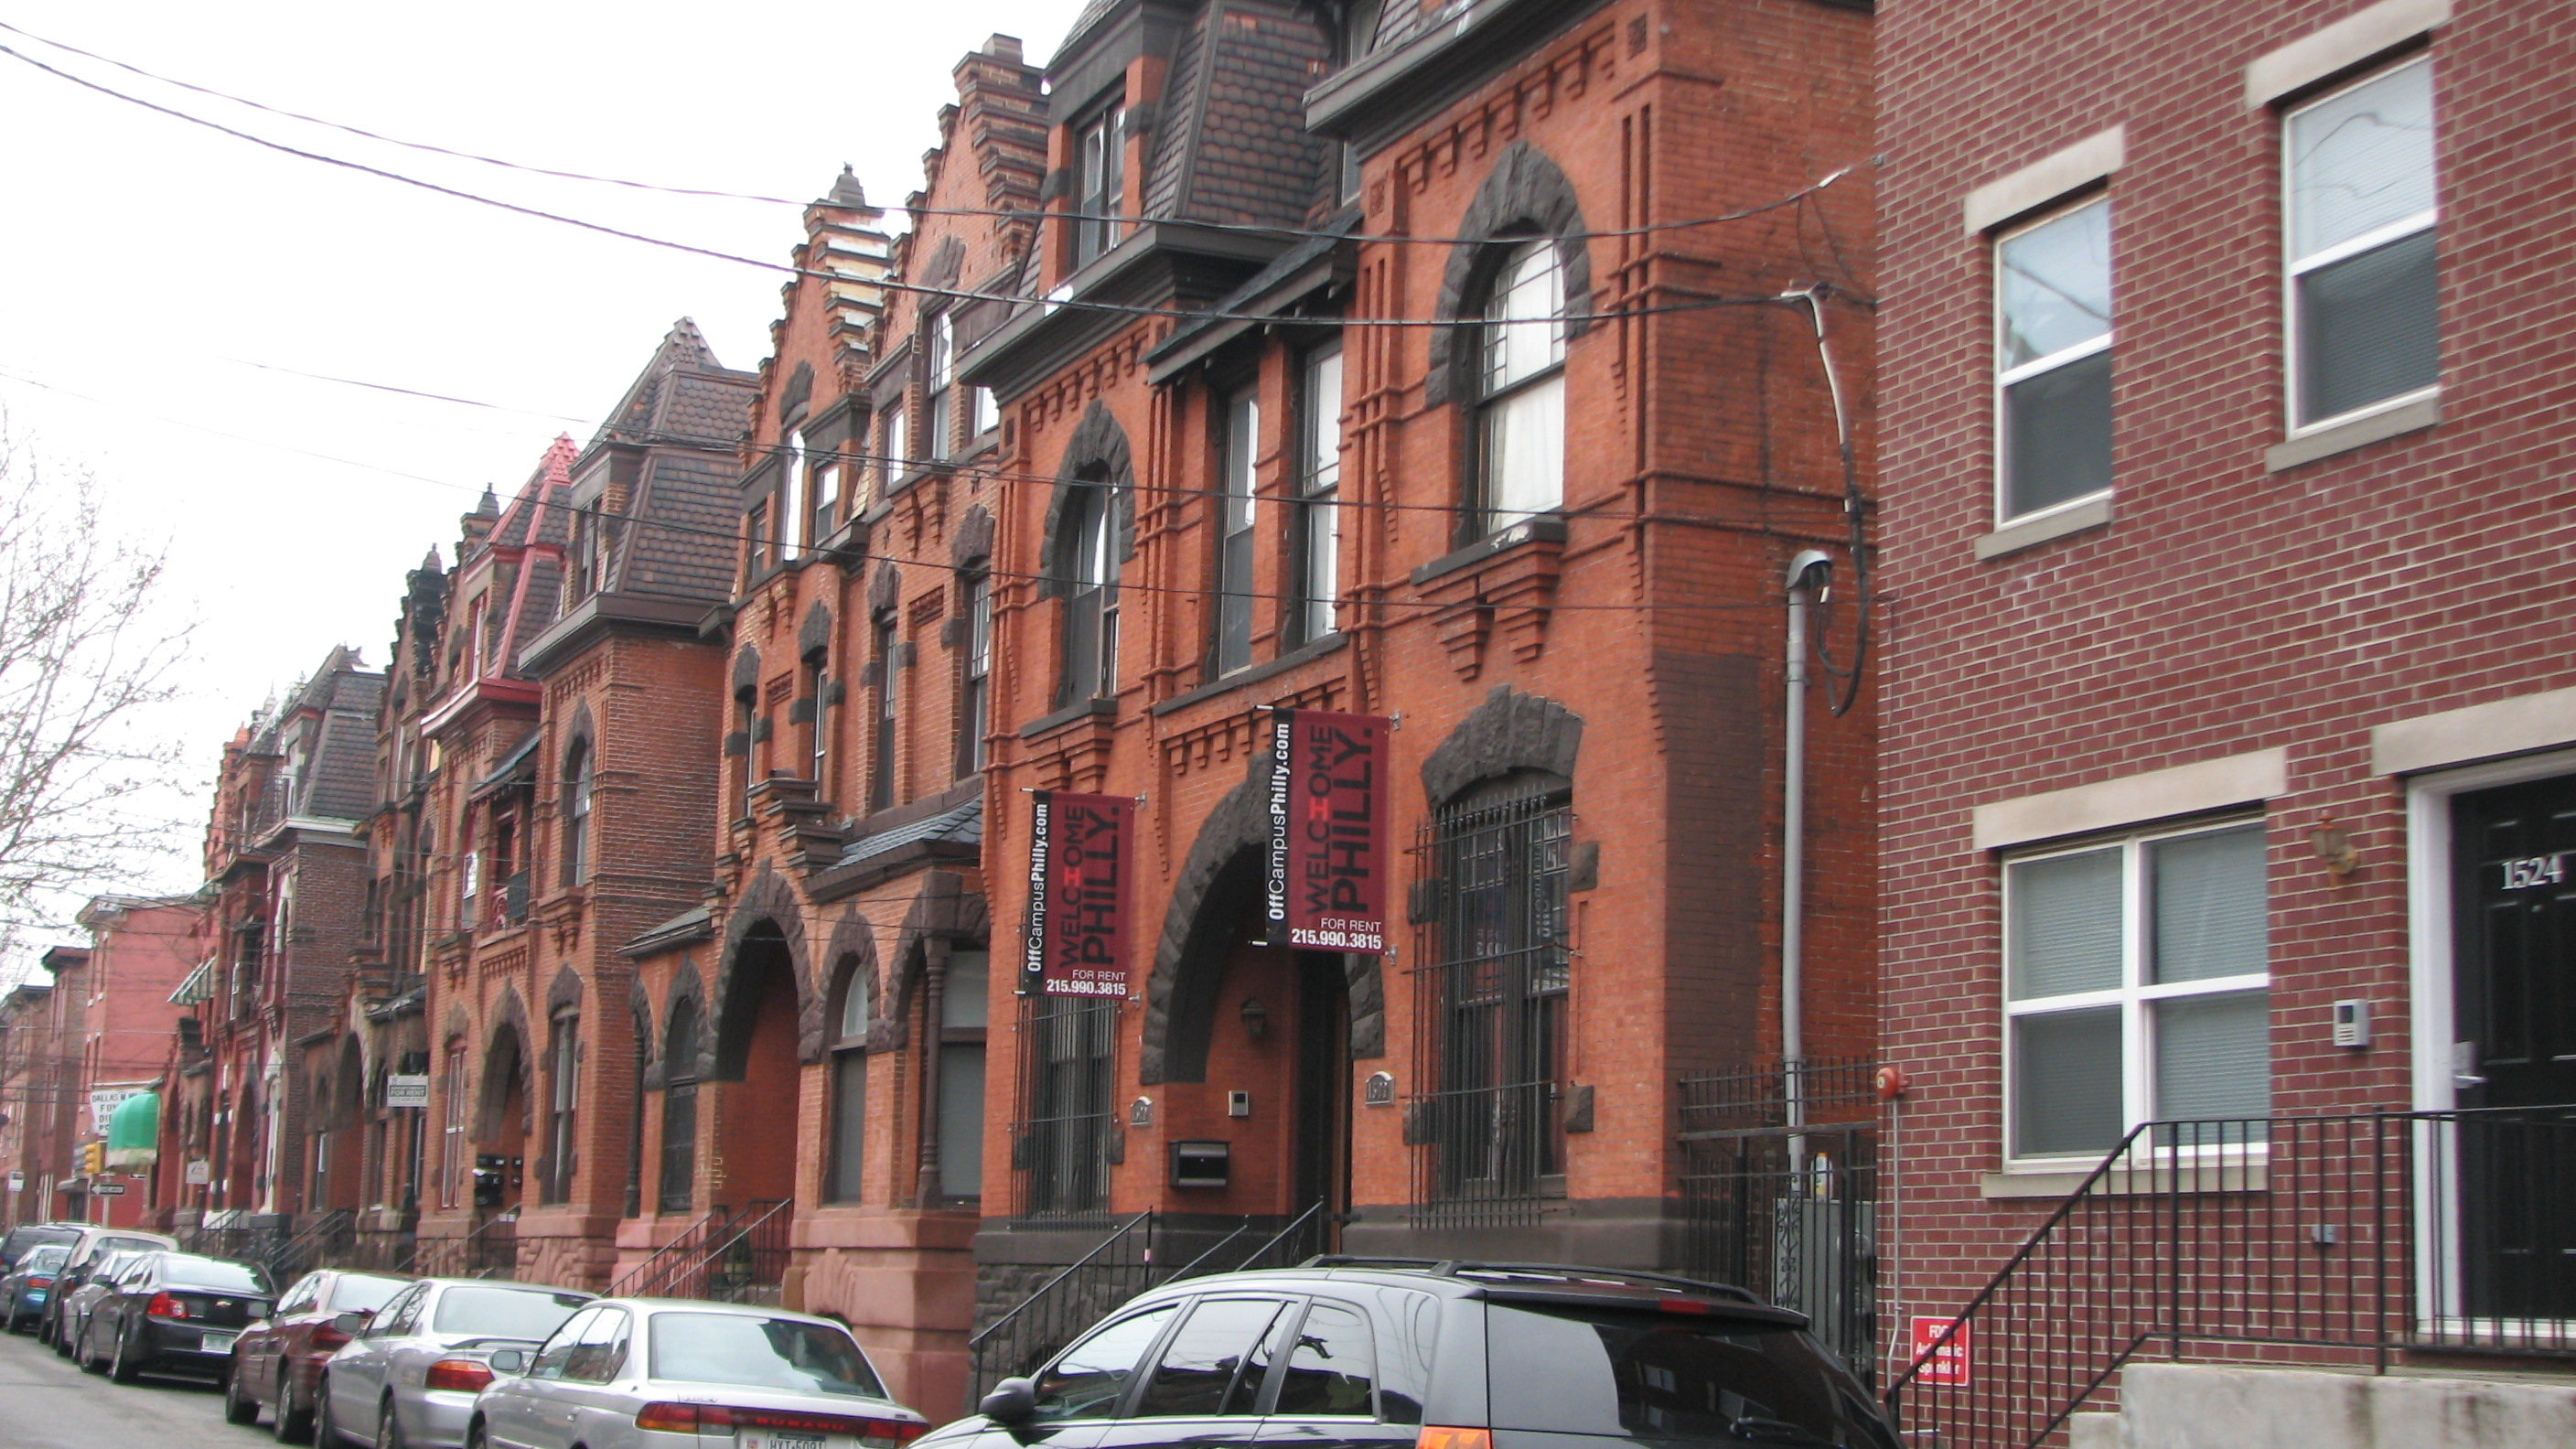 The twin houses at 1500 to 1522 North 17th Street were designed in 1886 by Willis Hale.